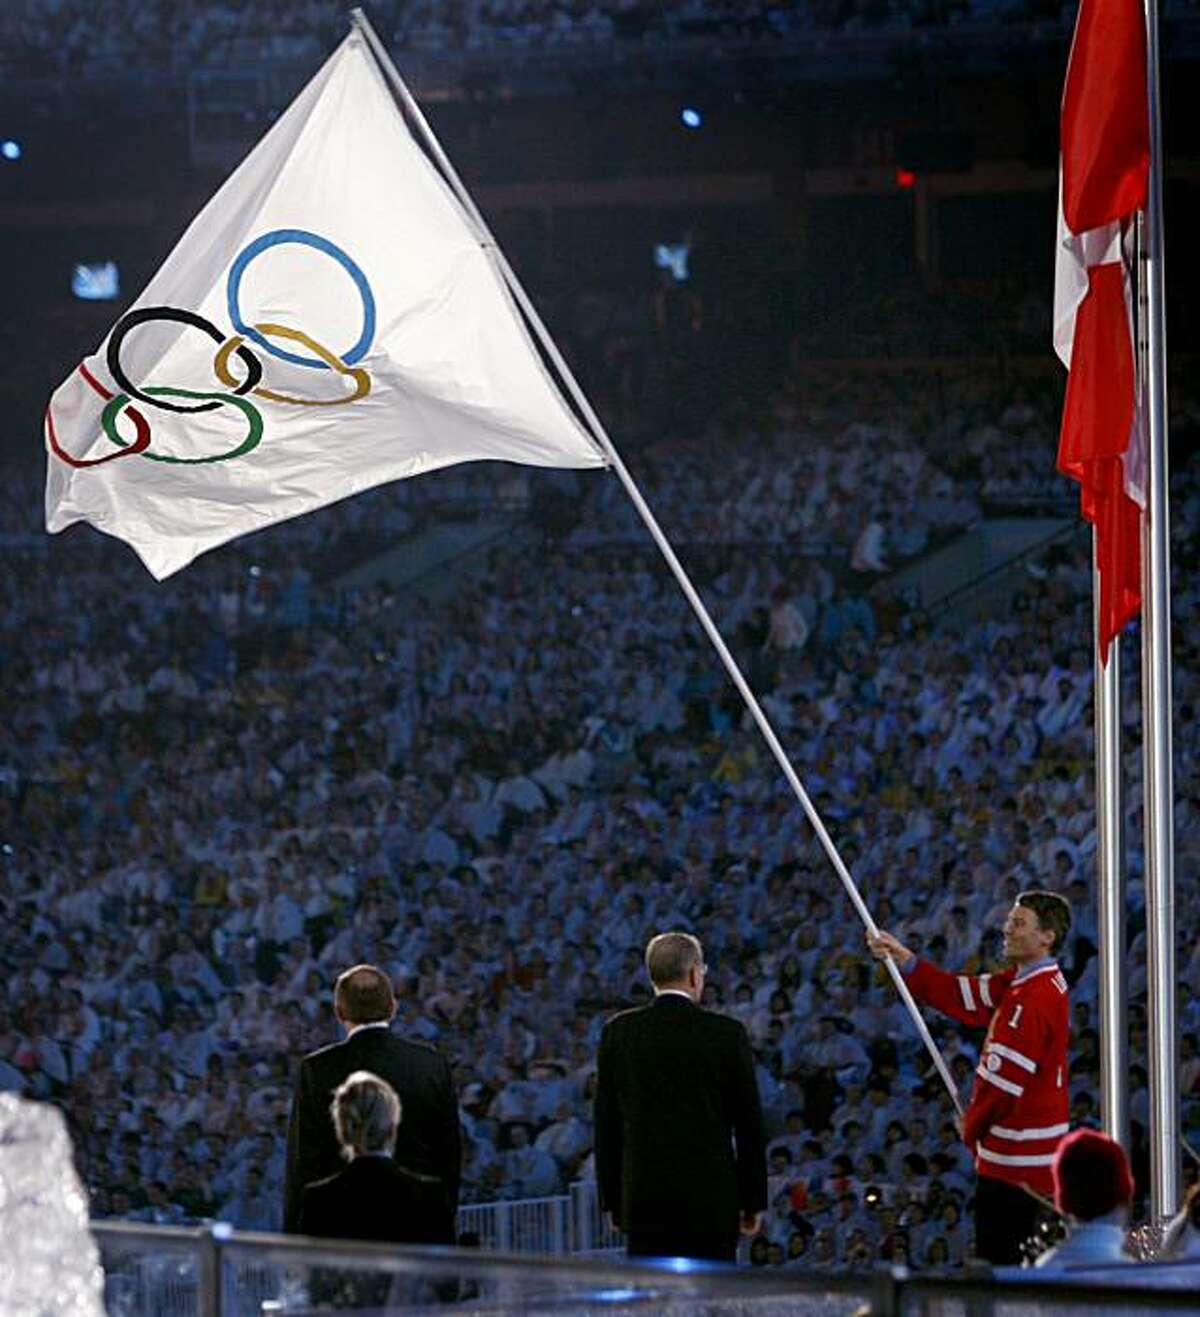 Vancouver city leaders tried to get the name pulled as early as 2015. According to The Globe and Mail, Vancouver Mayor Gregor Robertson told the project developer the Trump name was a blight on the city's skyline. Robertson is pictured above waving the Olympic flag.